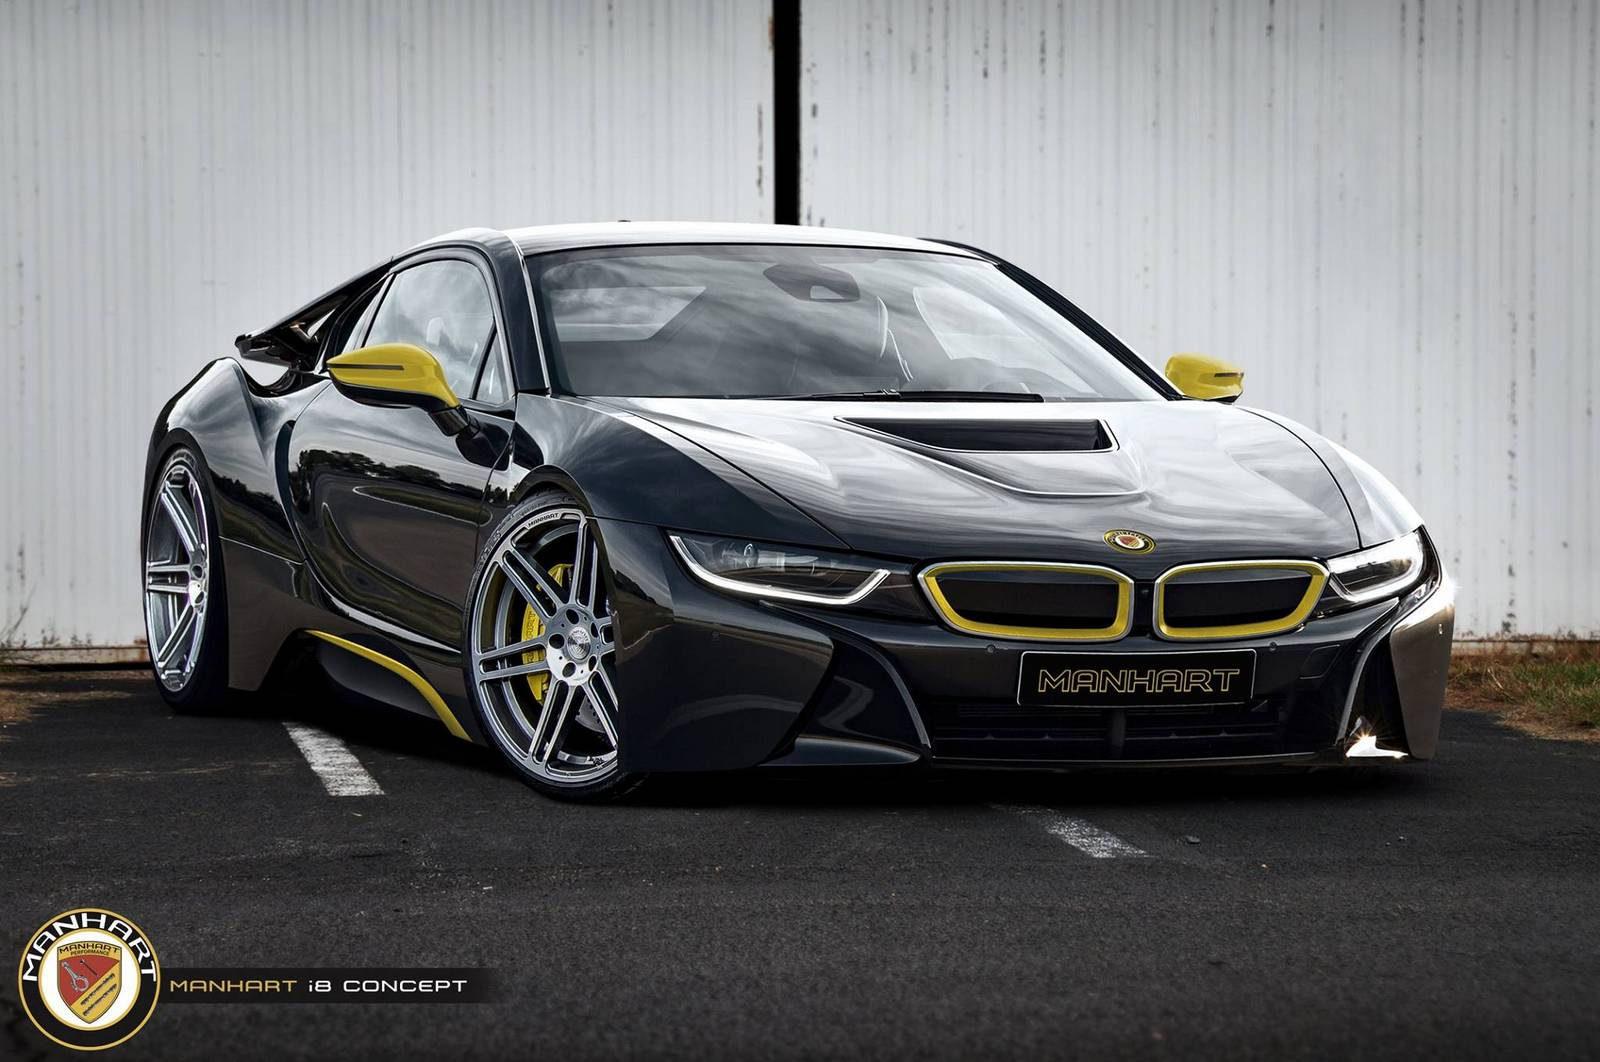 Manhart Racing Bmw I8 Concept Rendered Gtspirit